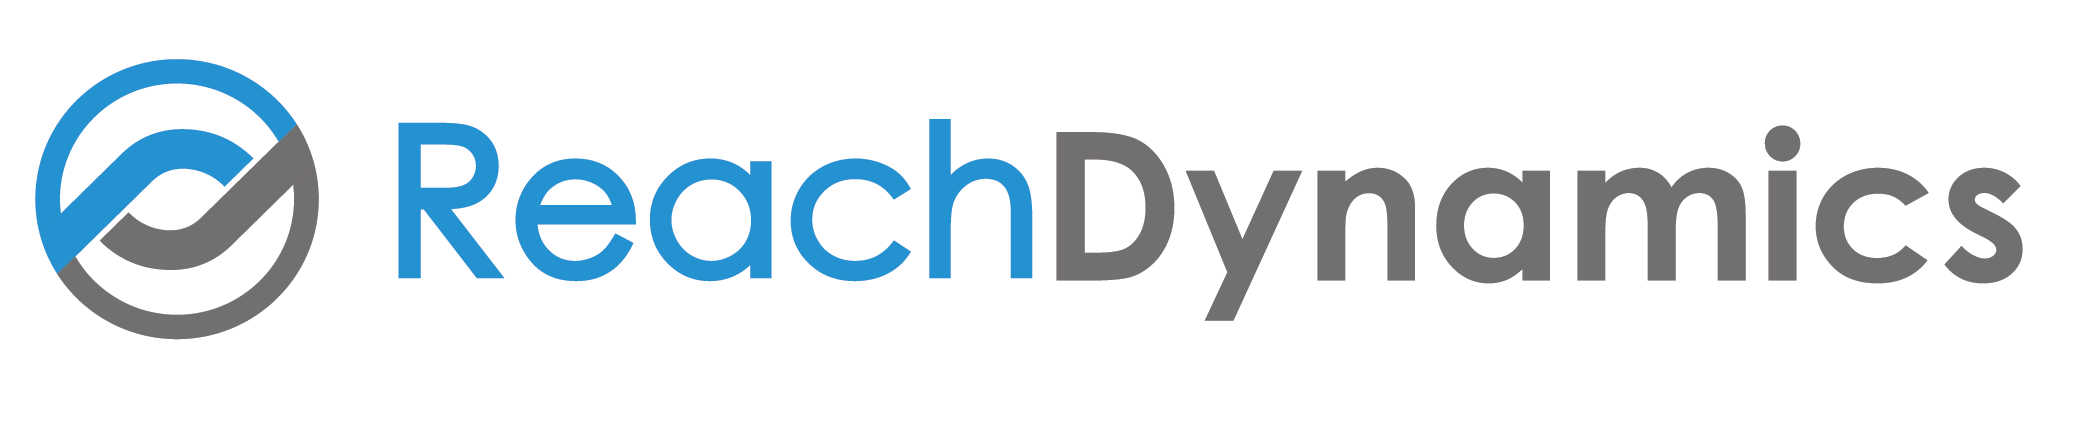 ReachDynamics Logo